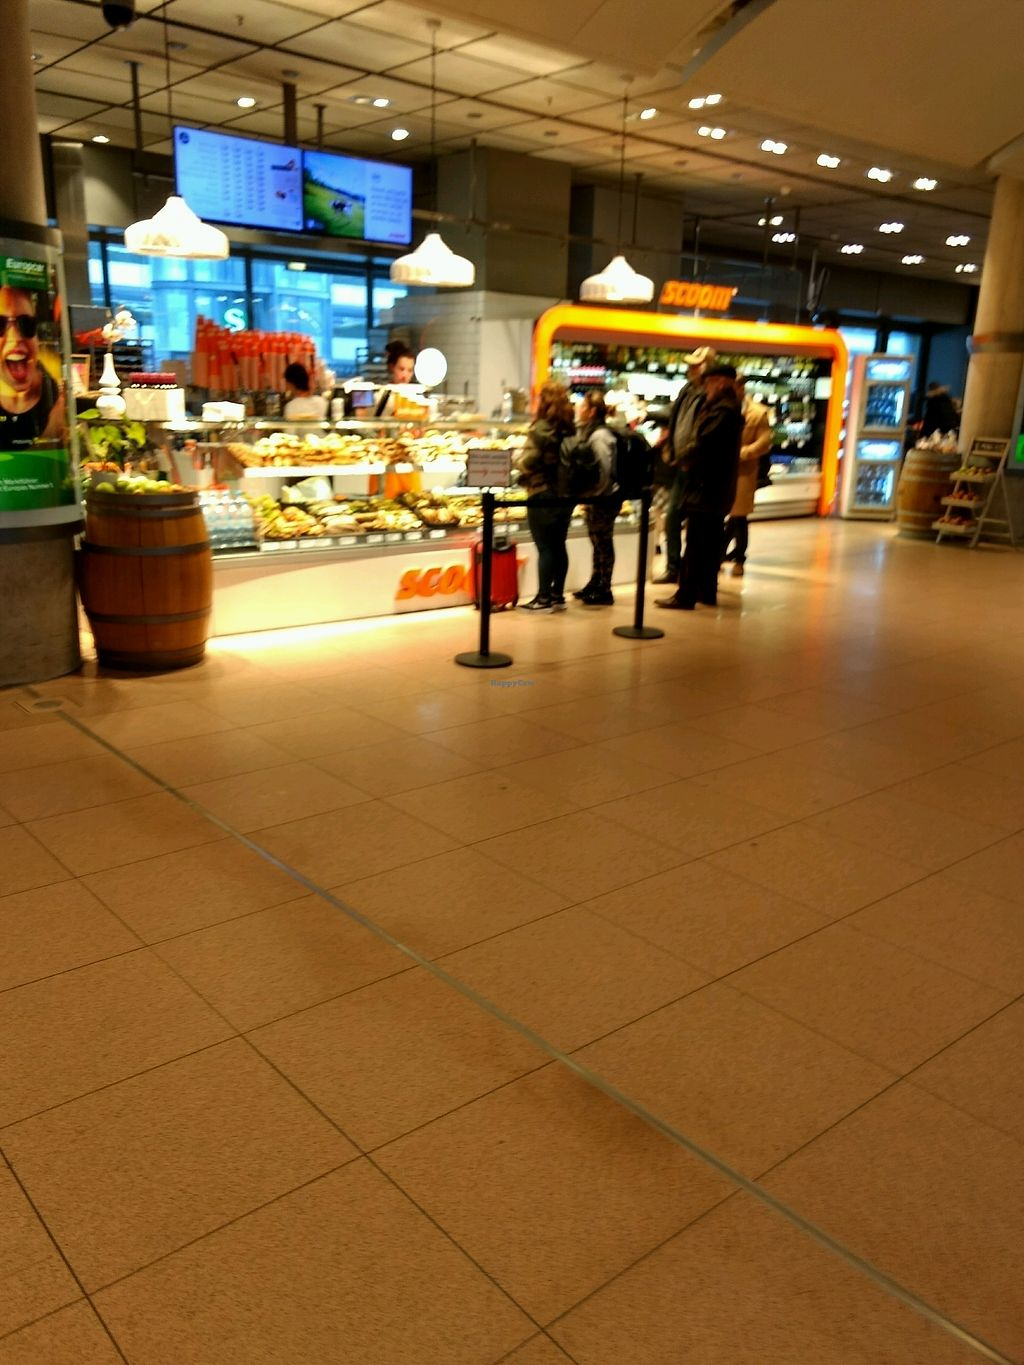 """Photo of Scoom - Hamburg Airport  by <a href=""""/members/profile/craigmc"""">craigmc</a> <br/>scoom <br/> March 12, 2018  - <a href='/contact/abuse/image/97098/369690'>Report</a>"""